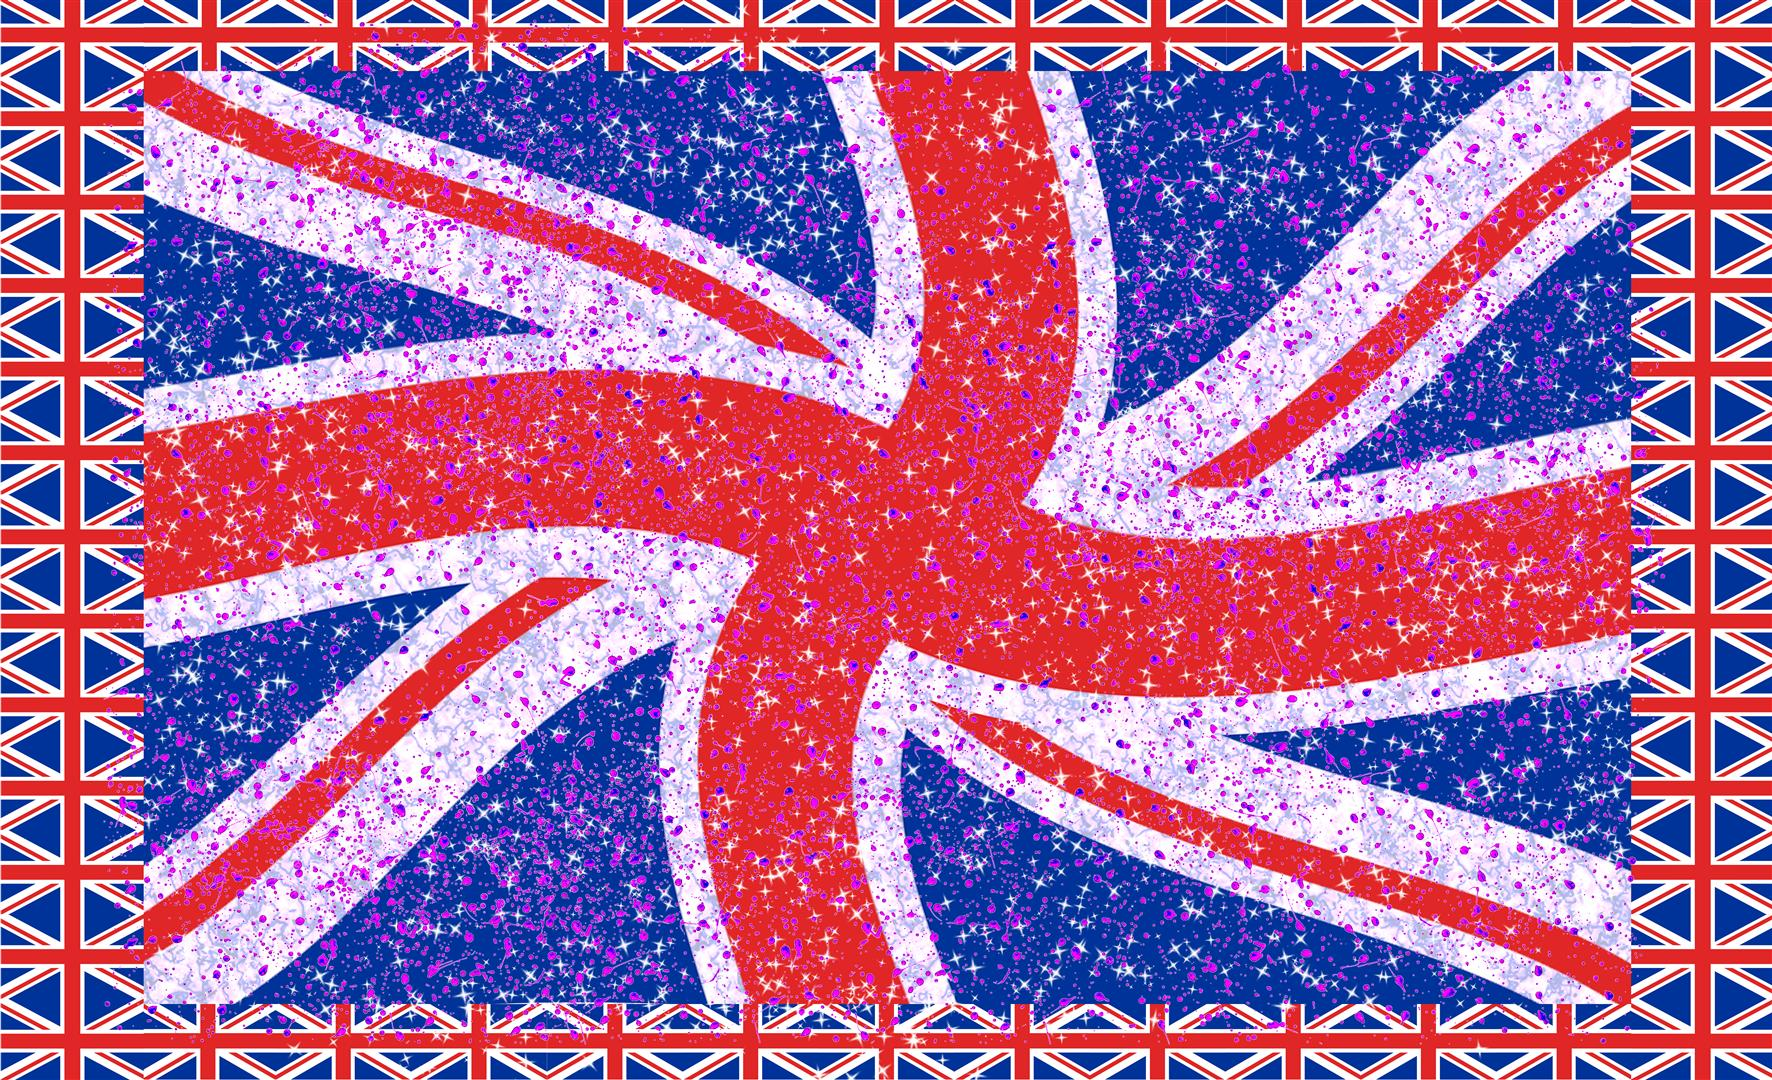 Union Jack Final for print (Large).jpg